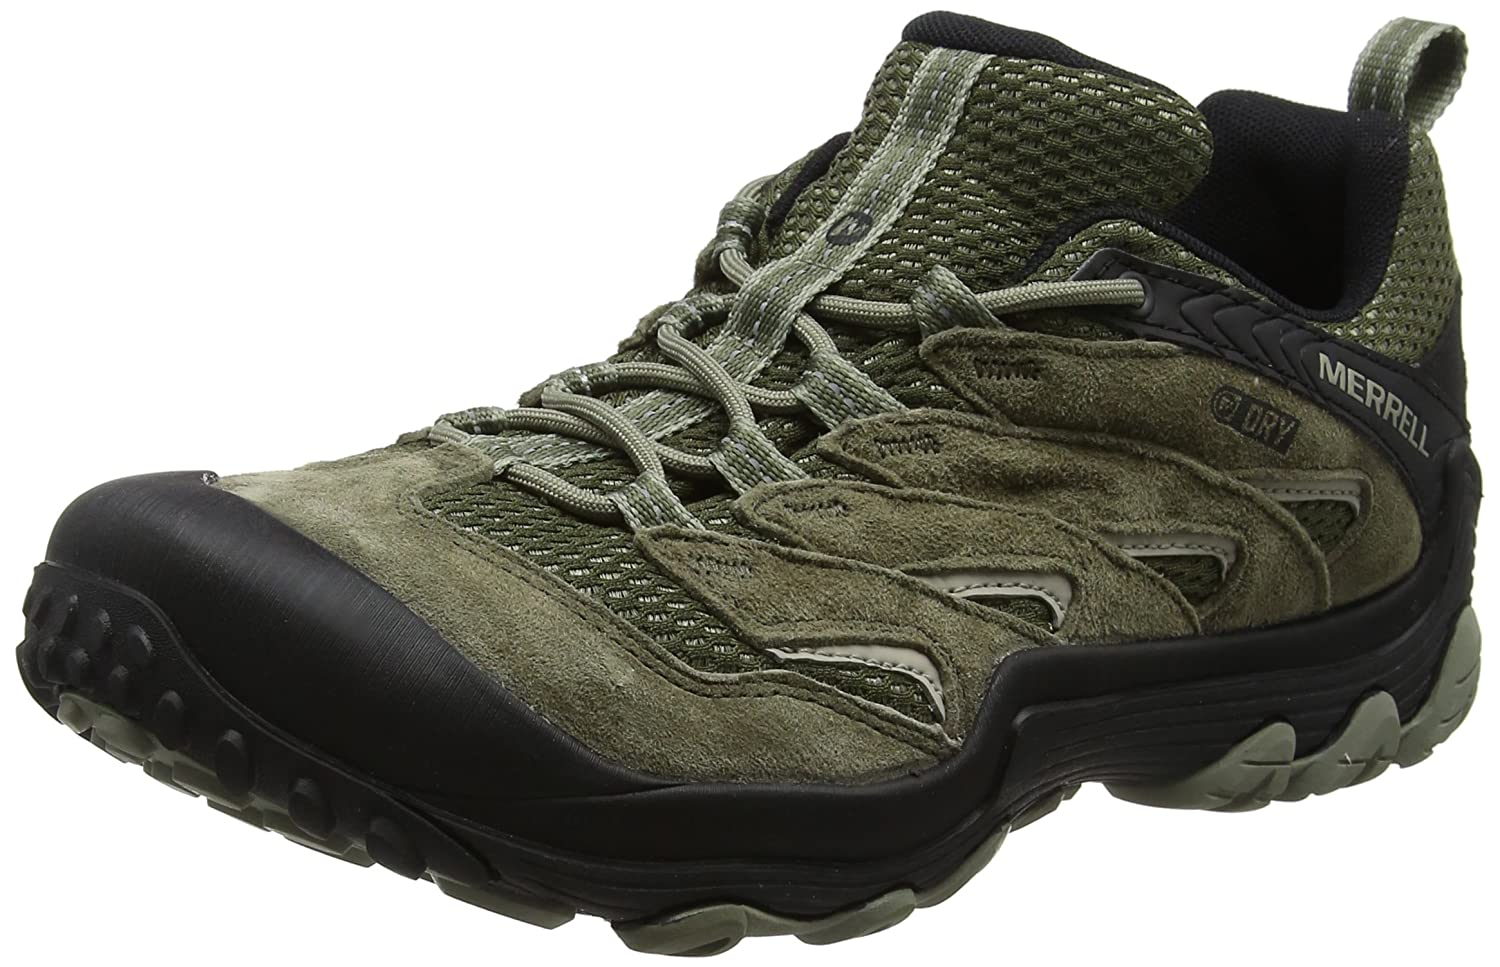 Merrell Women's Chameleon 7 Limit Waterproof Hiking Boot B071S8FYX9 10.5 M US|Dusty Olive